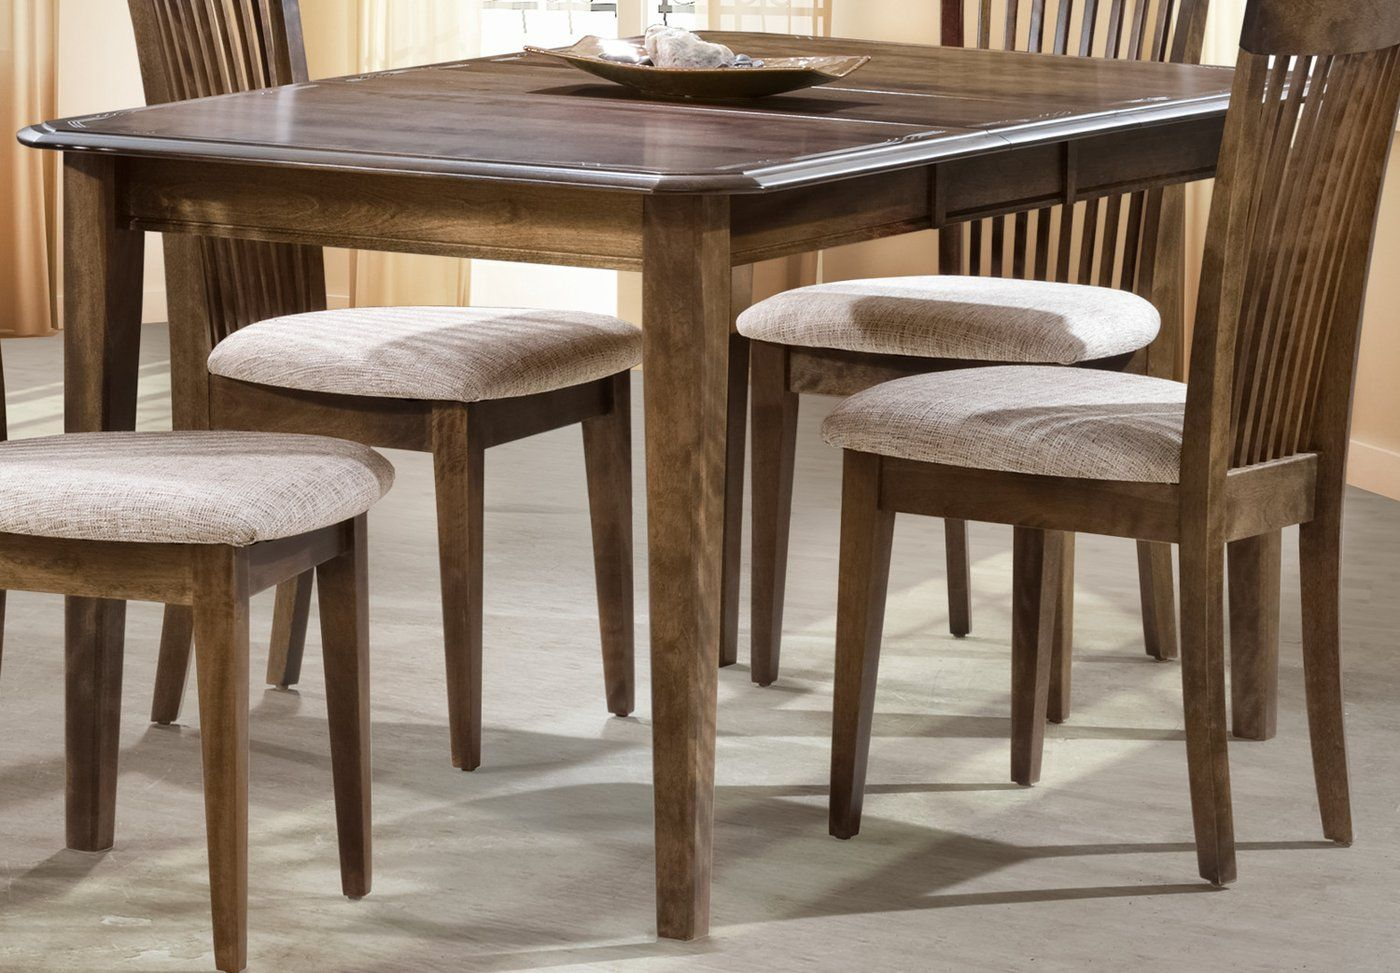 Granby Table Fossile Leon Meubles Leon Dining Table Table Dining